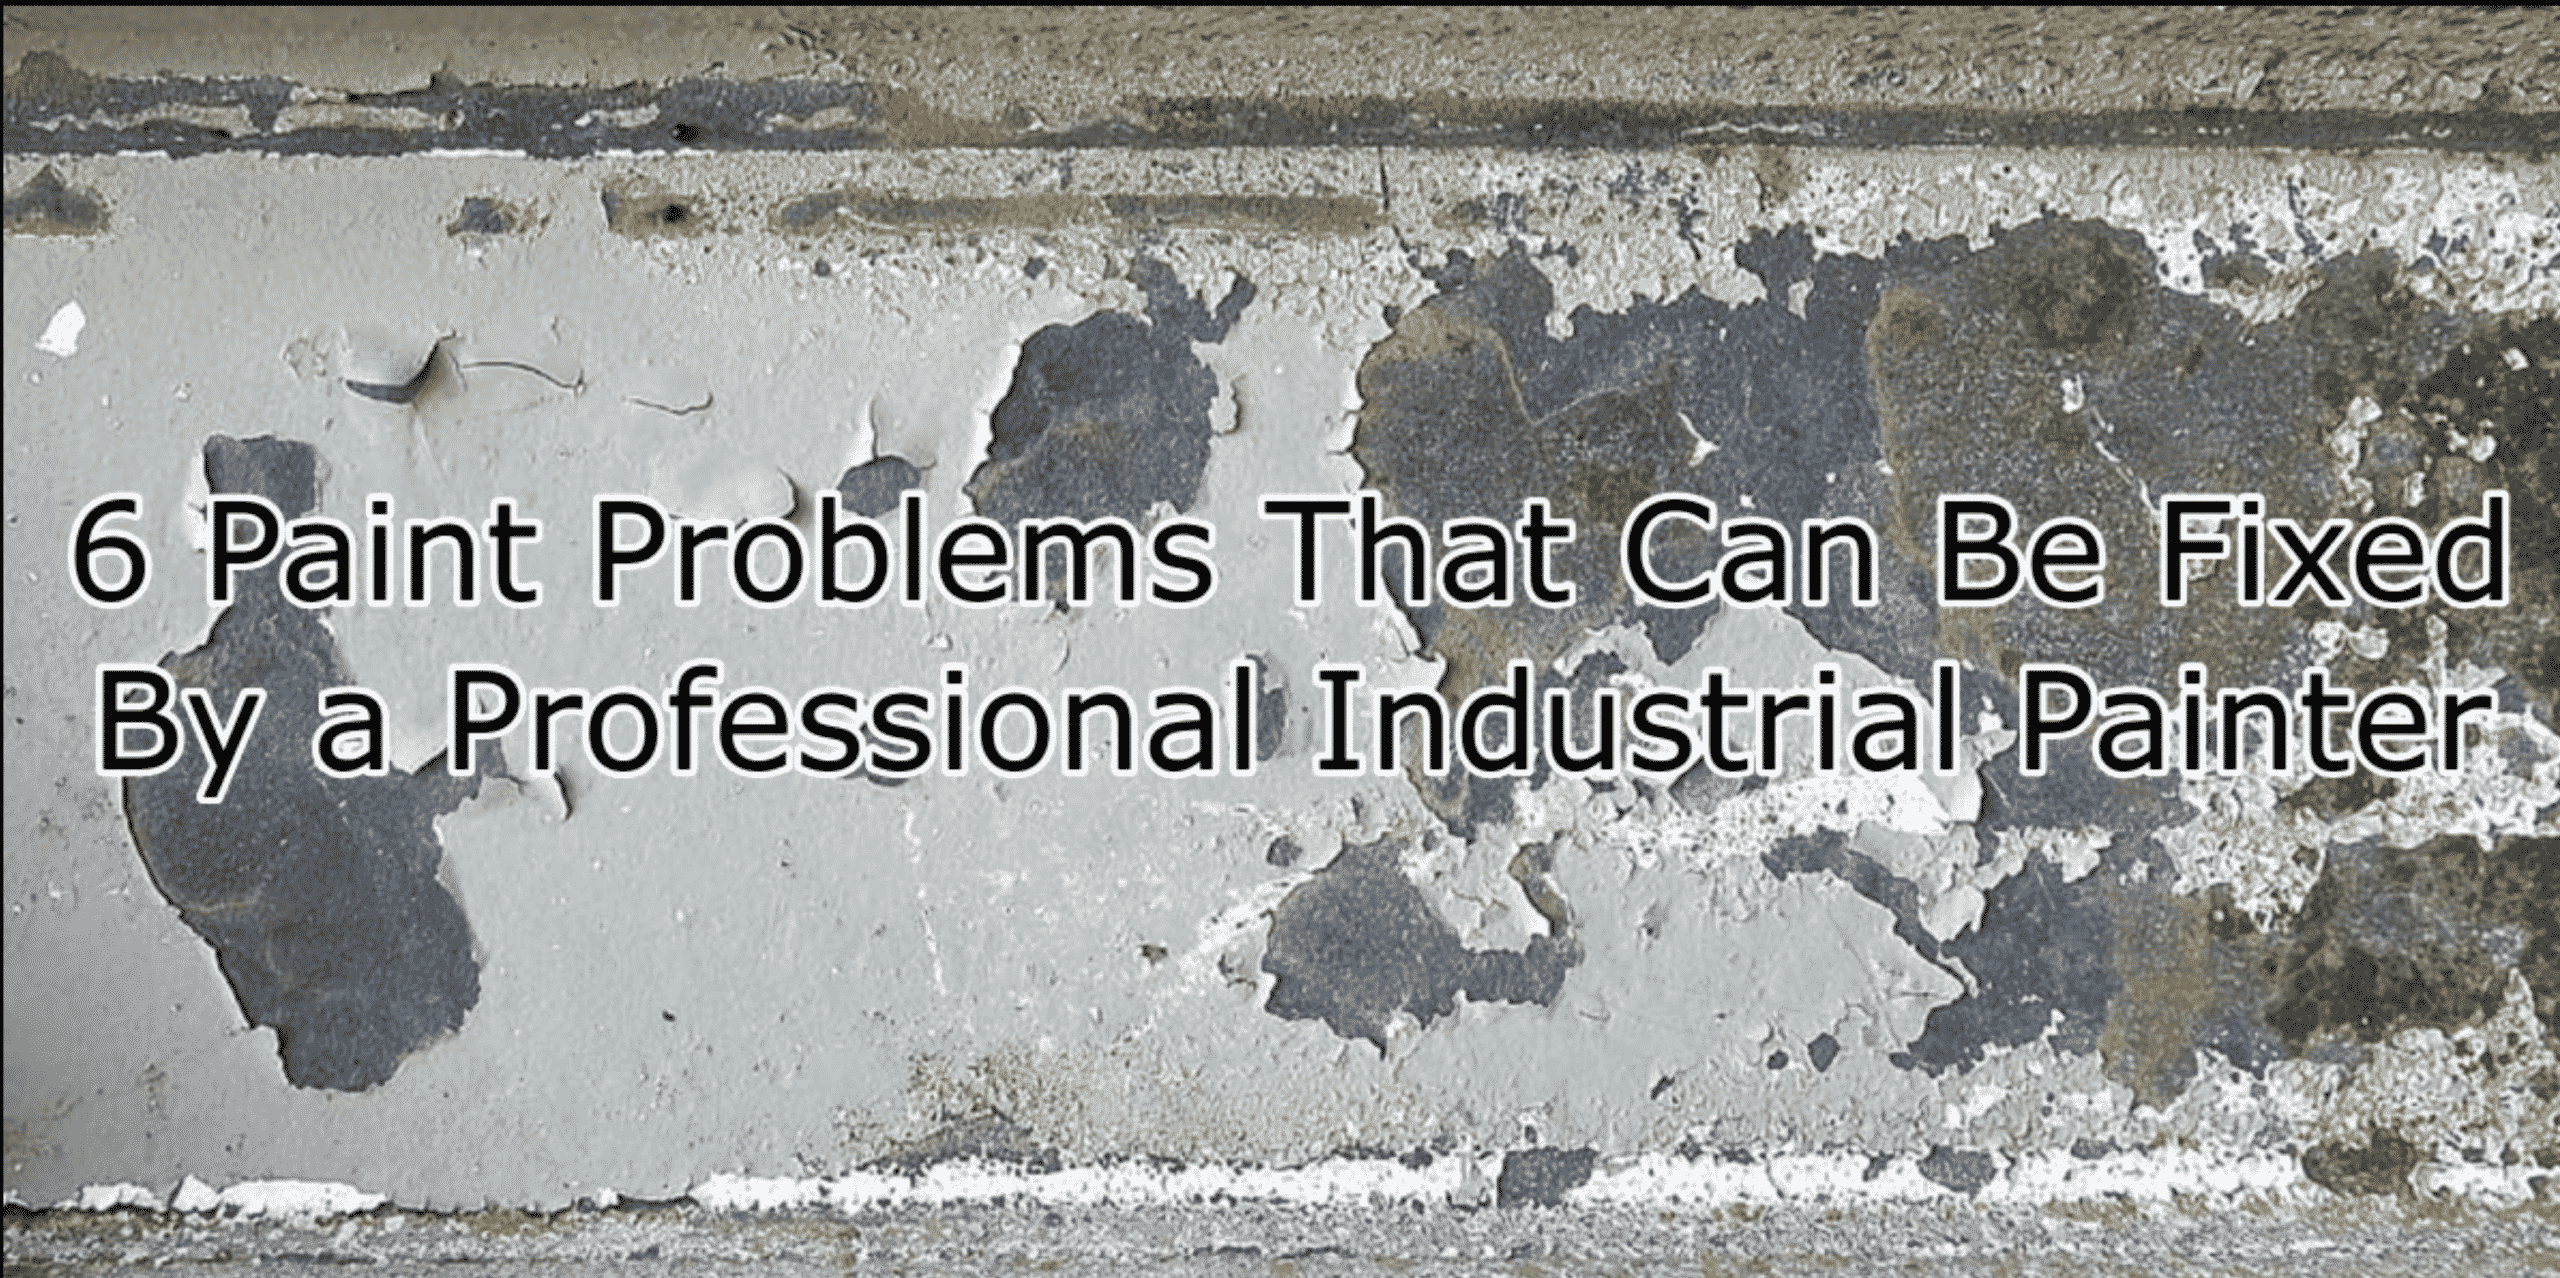 6 Paint Problems That Can Be Fixed By a Professional Industrial Painter